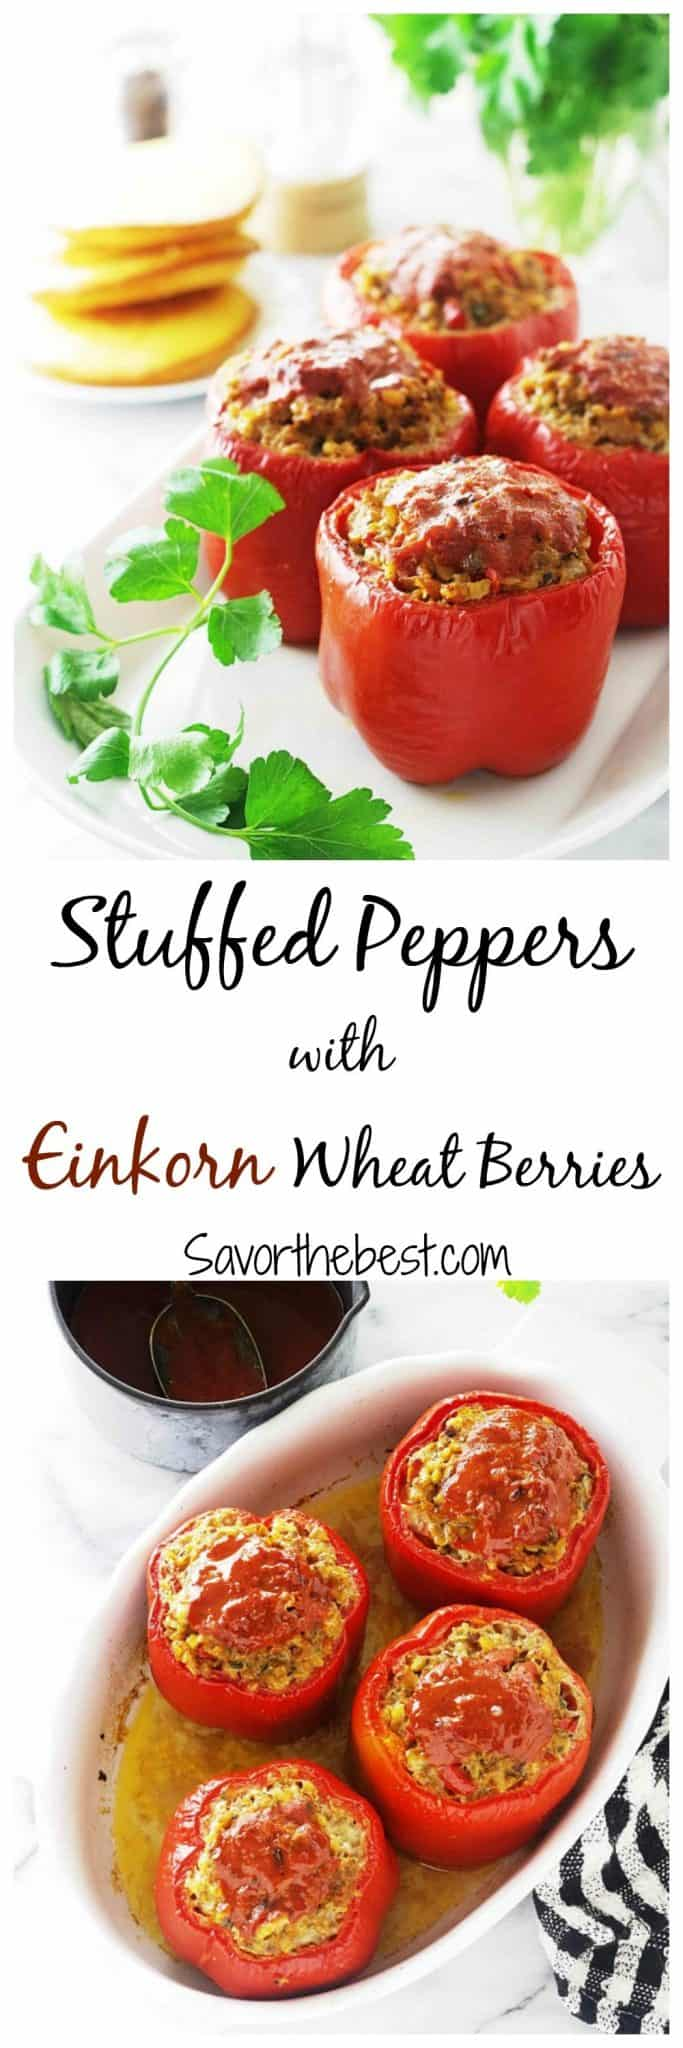 stuffed peppers with einkorn berries